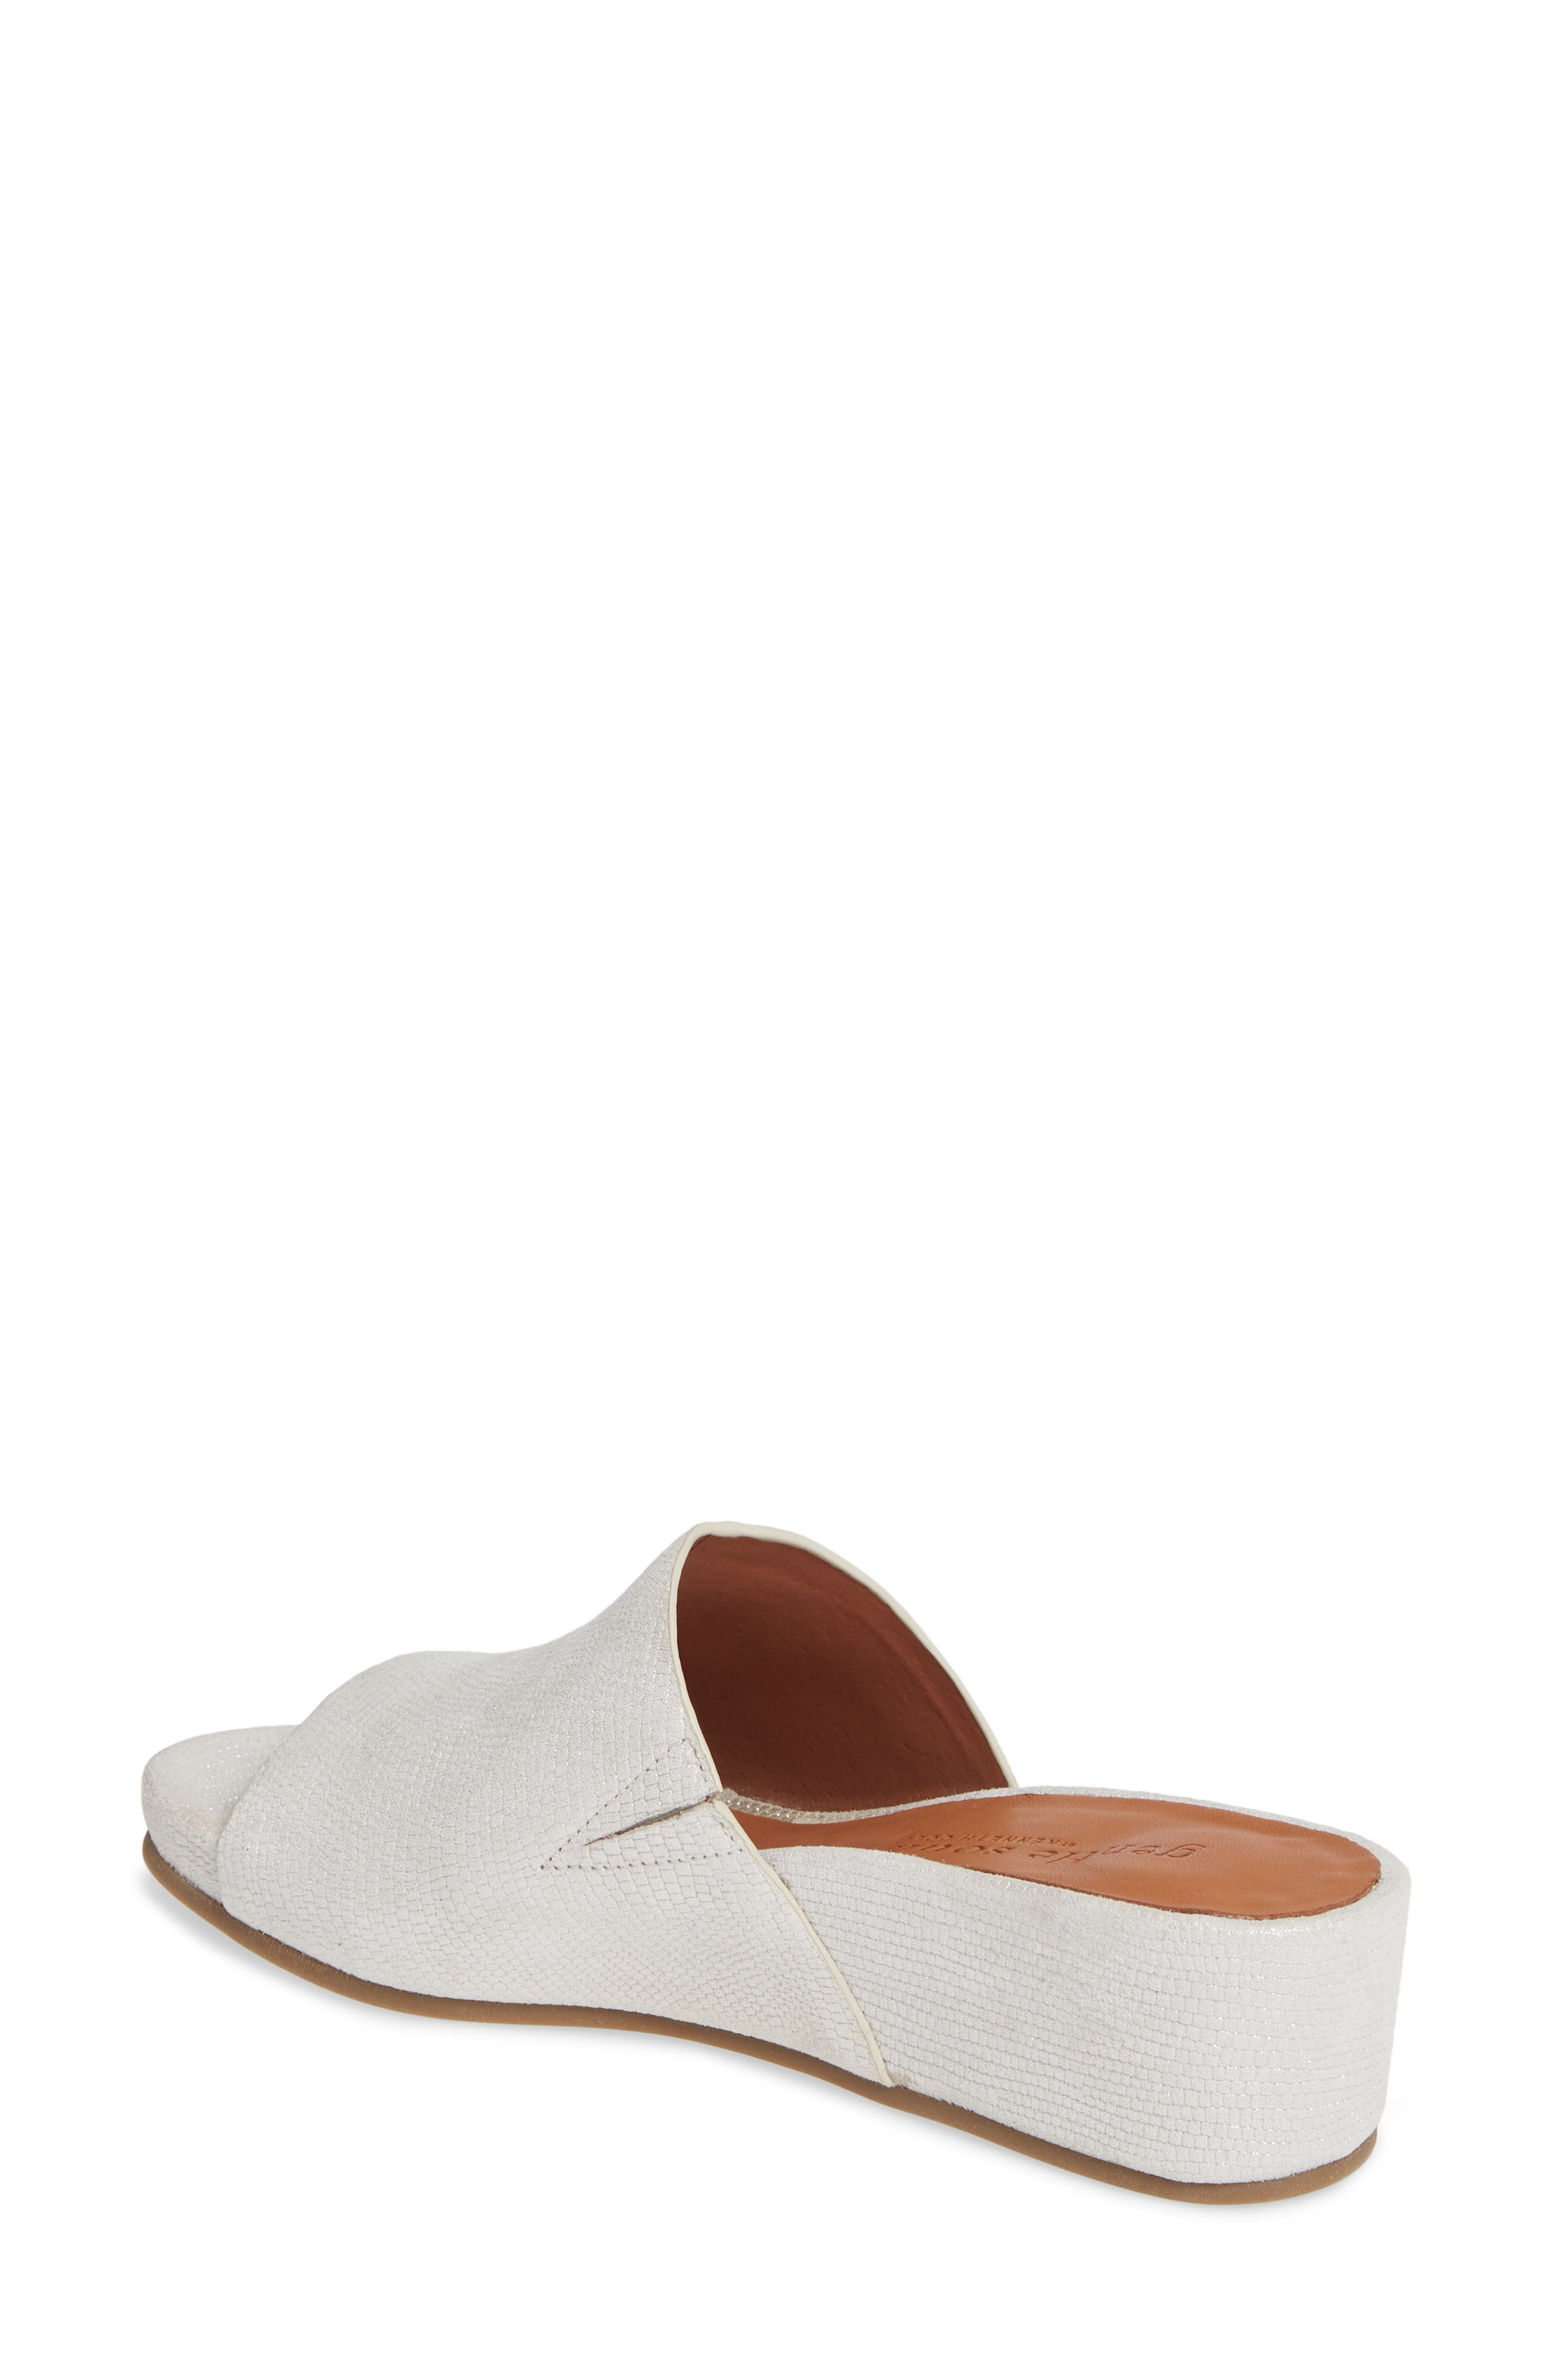 GENTLE SOULS BY KENNETH COLE, Gisele Wedge Slide Sandal, Alternate thumbnail 2, color, WHITE EMBOSSED LEATHER